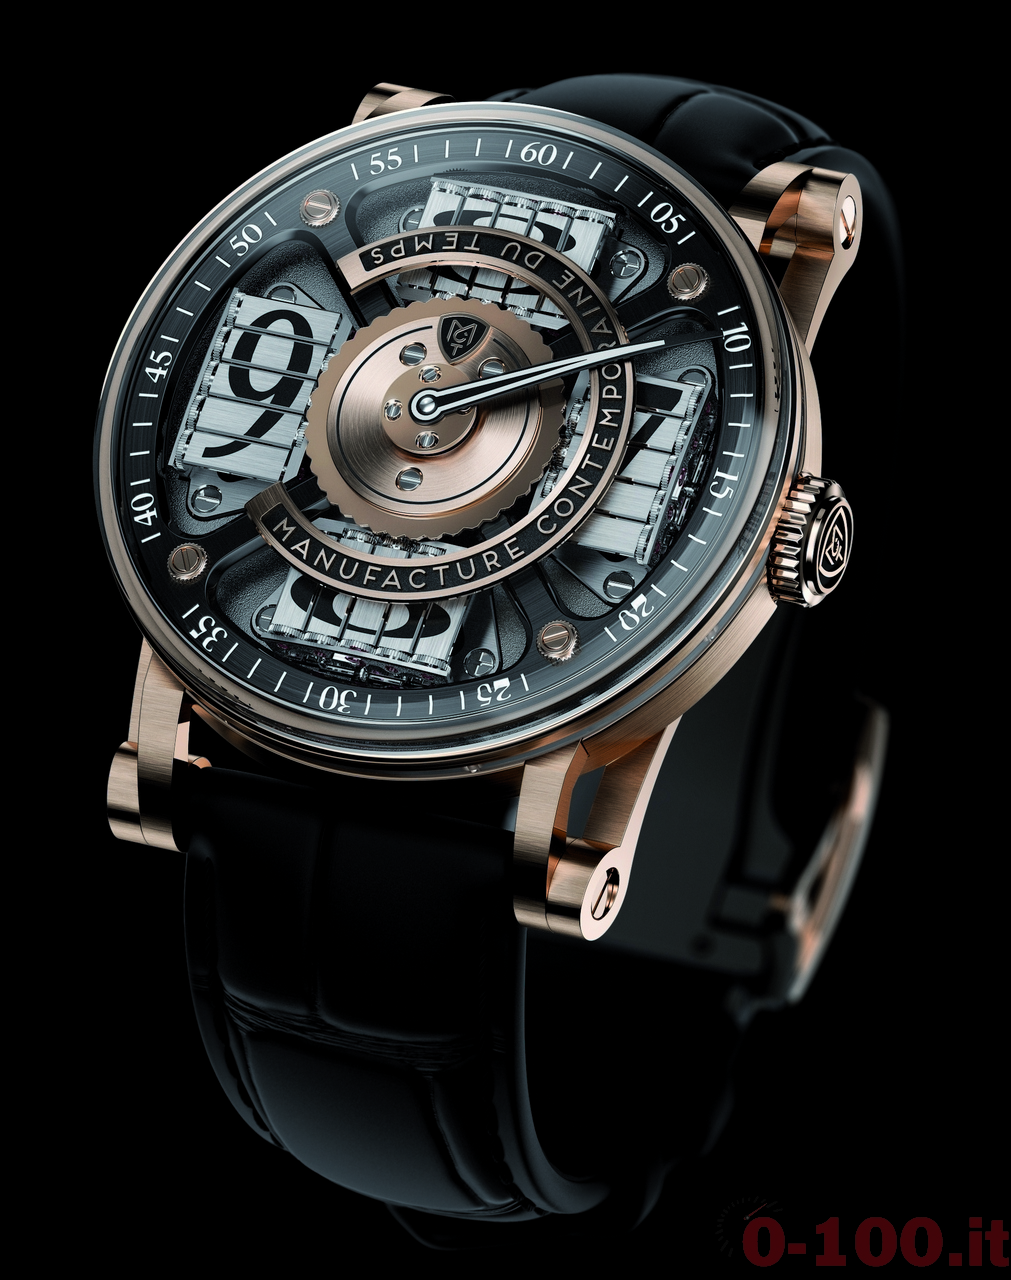 baselworld-2014-mct-sequential-two-s200_0-1001